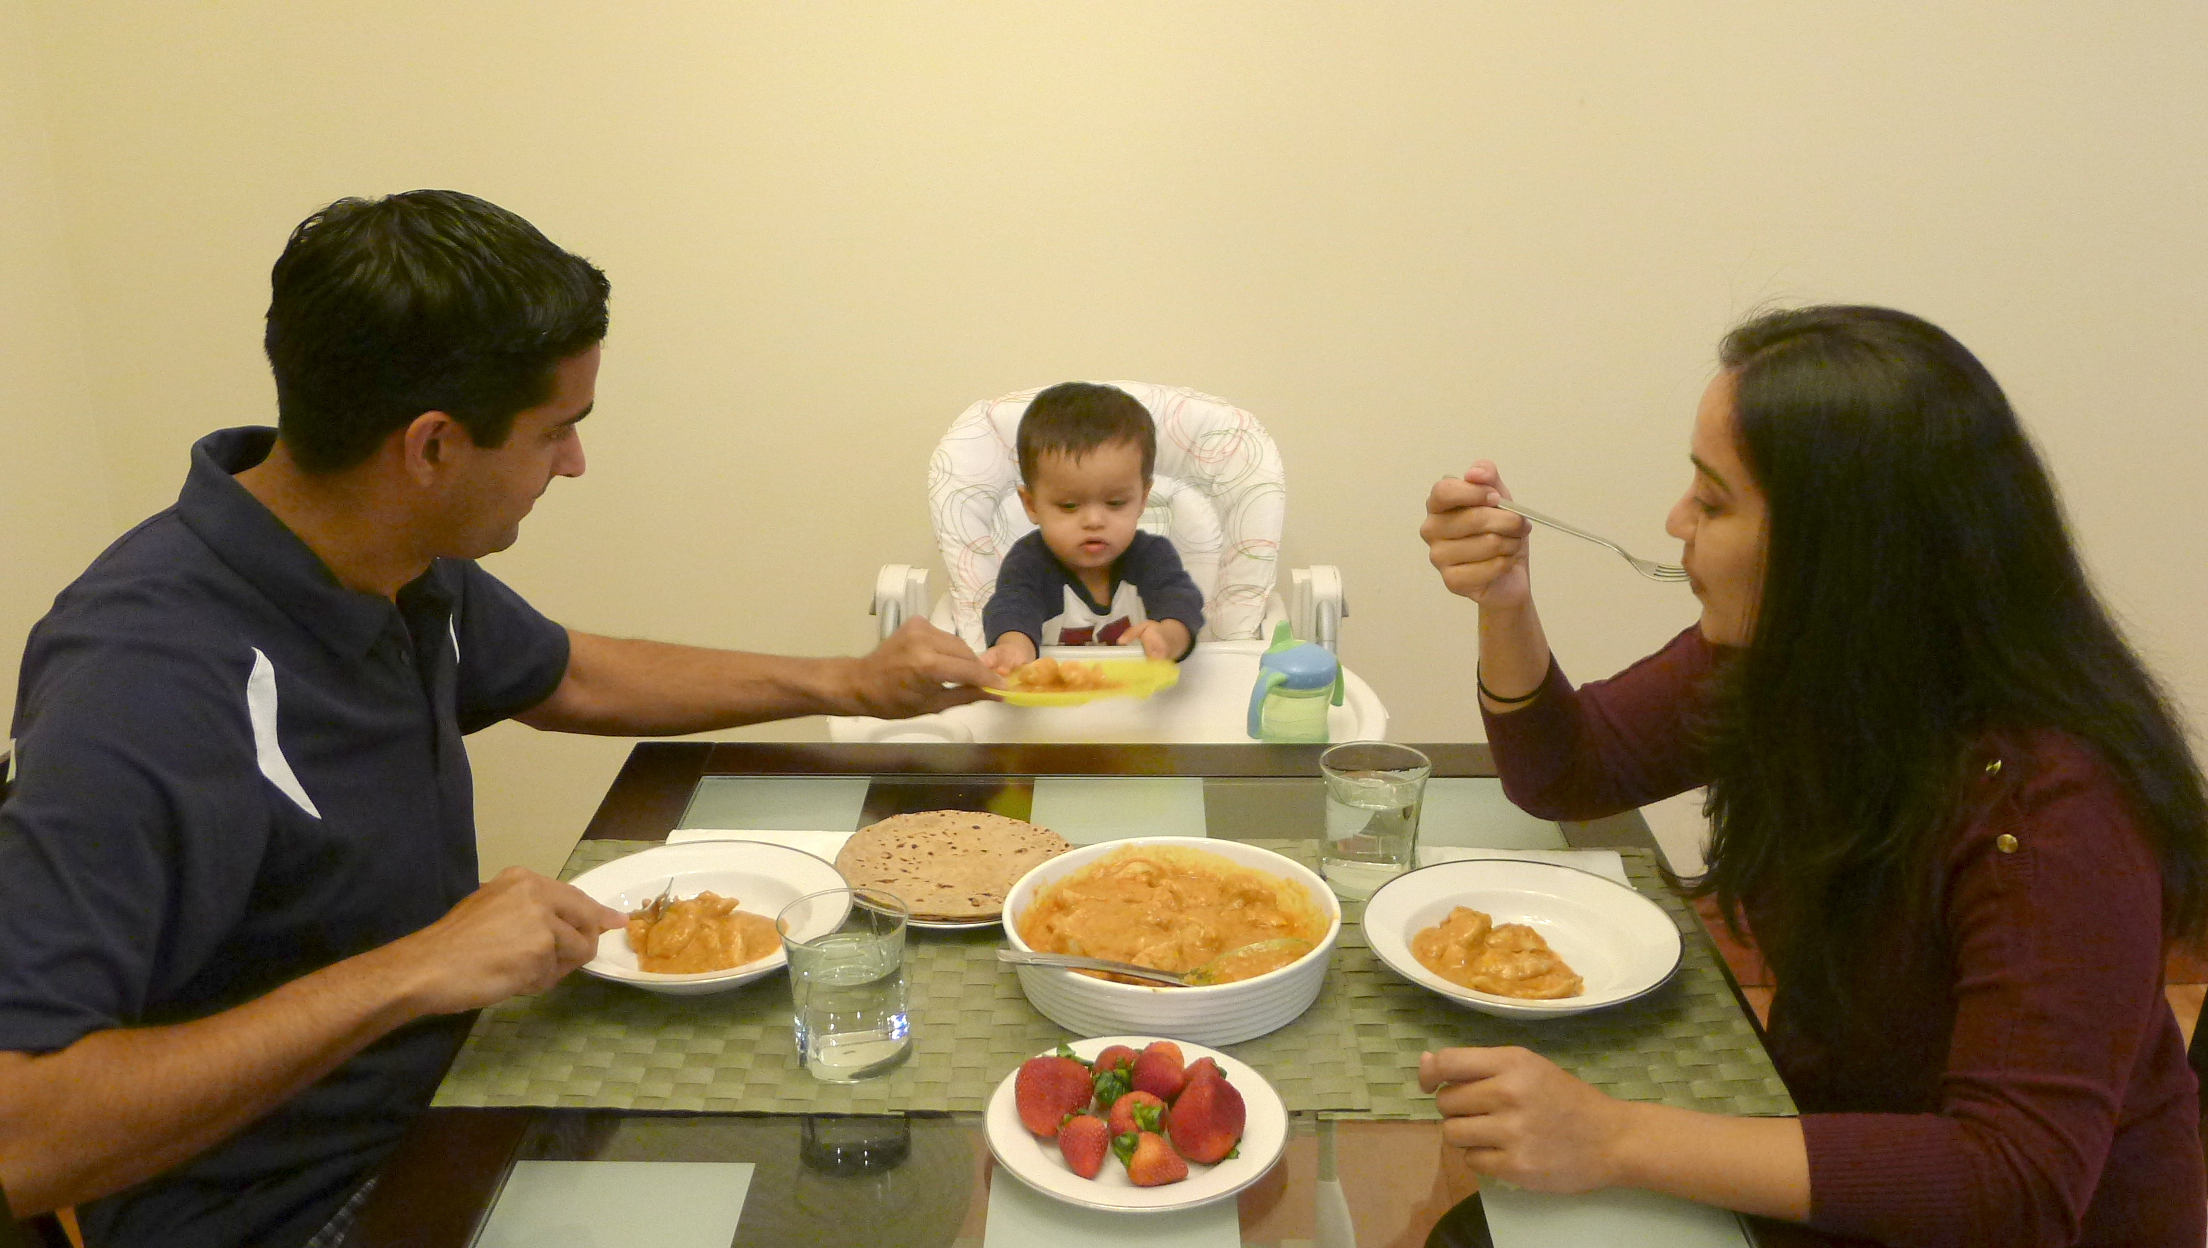 Eating at the table with your children instils healthy habits. Photo: Courtesy of Rabia Cumber Samji